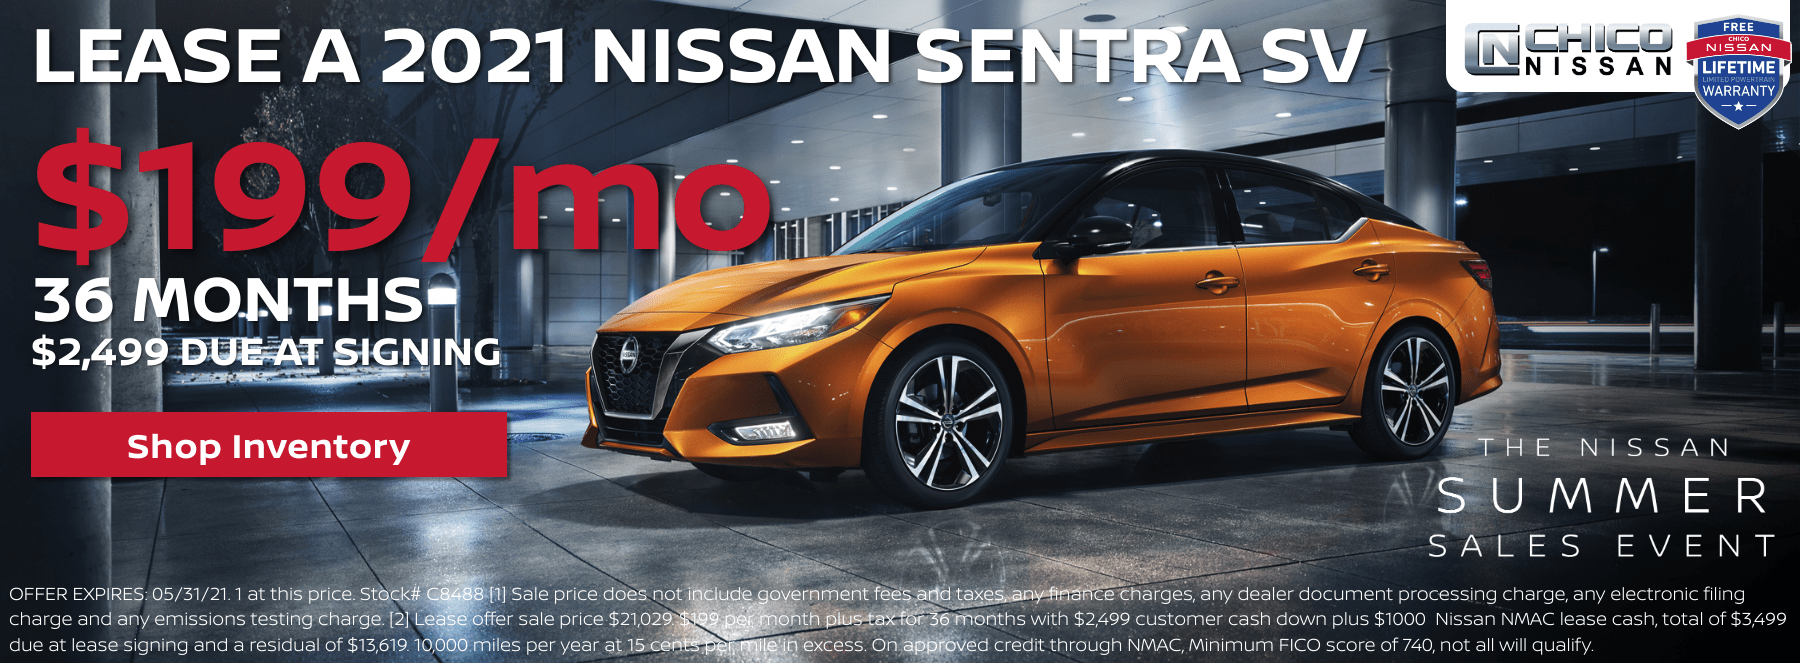 May Sentra Lease-1800x663px